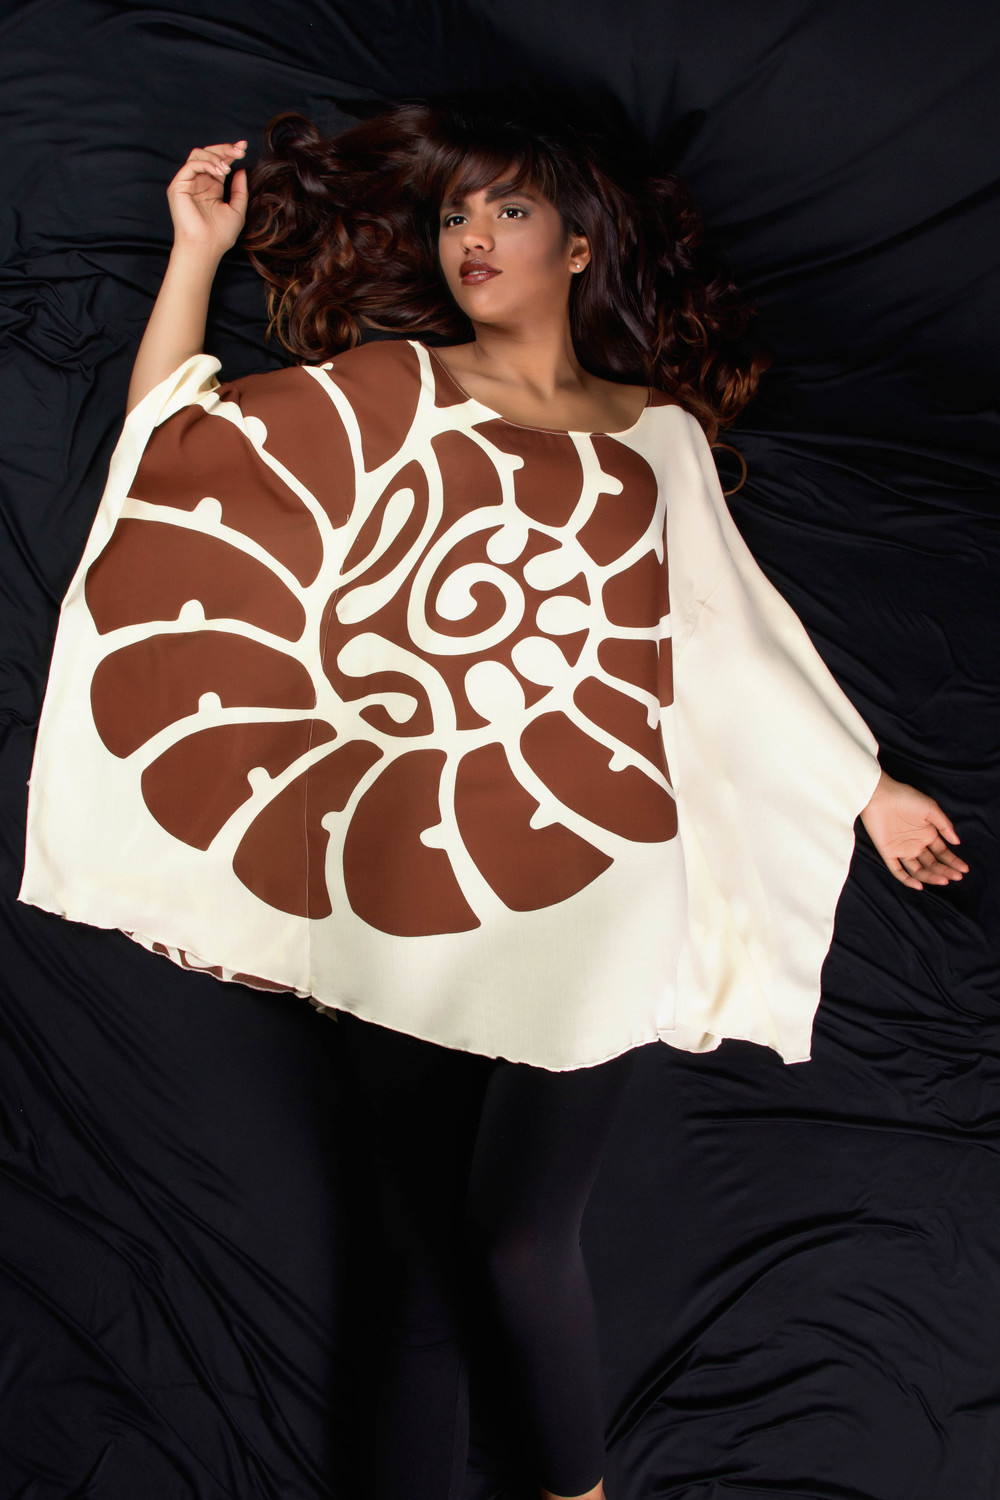 KZHAWAII-Brown Butterfly V.jpg